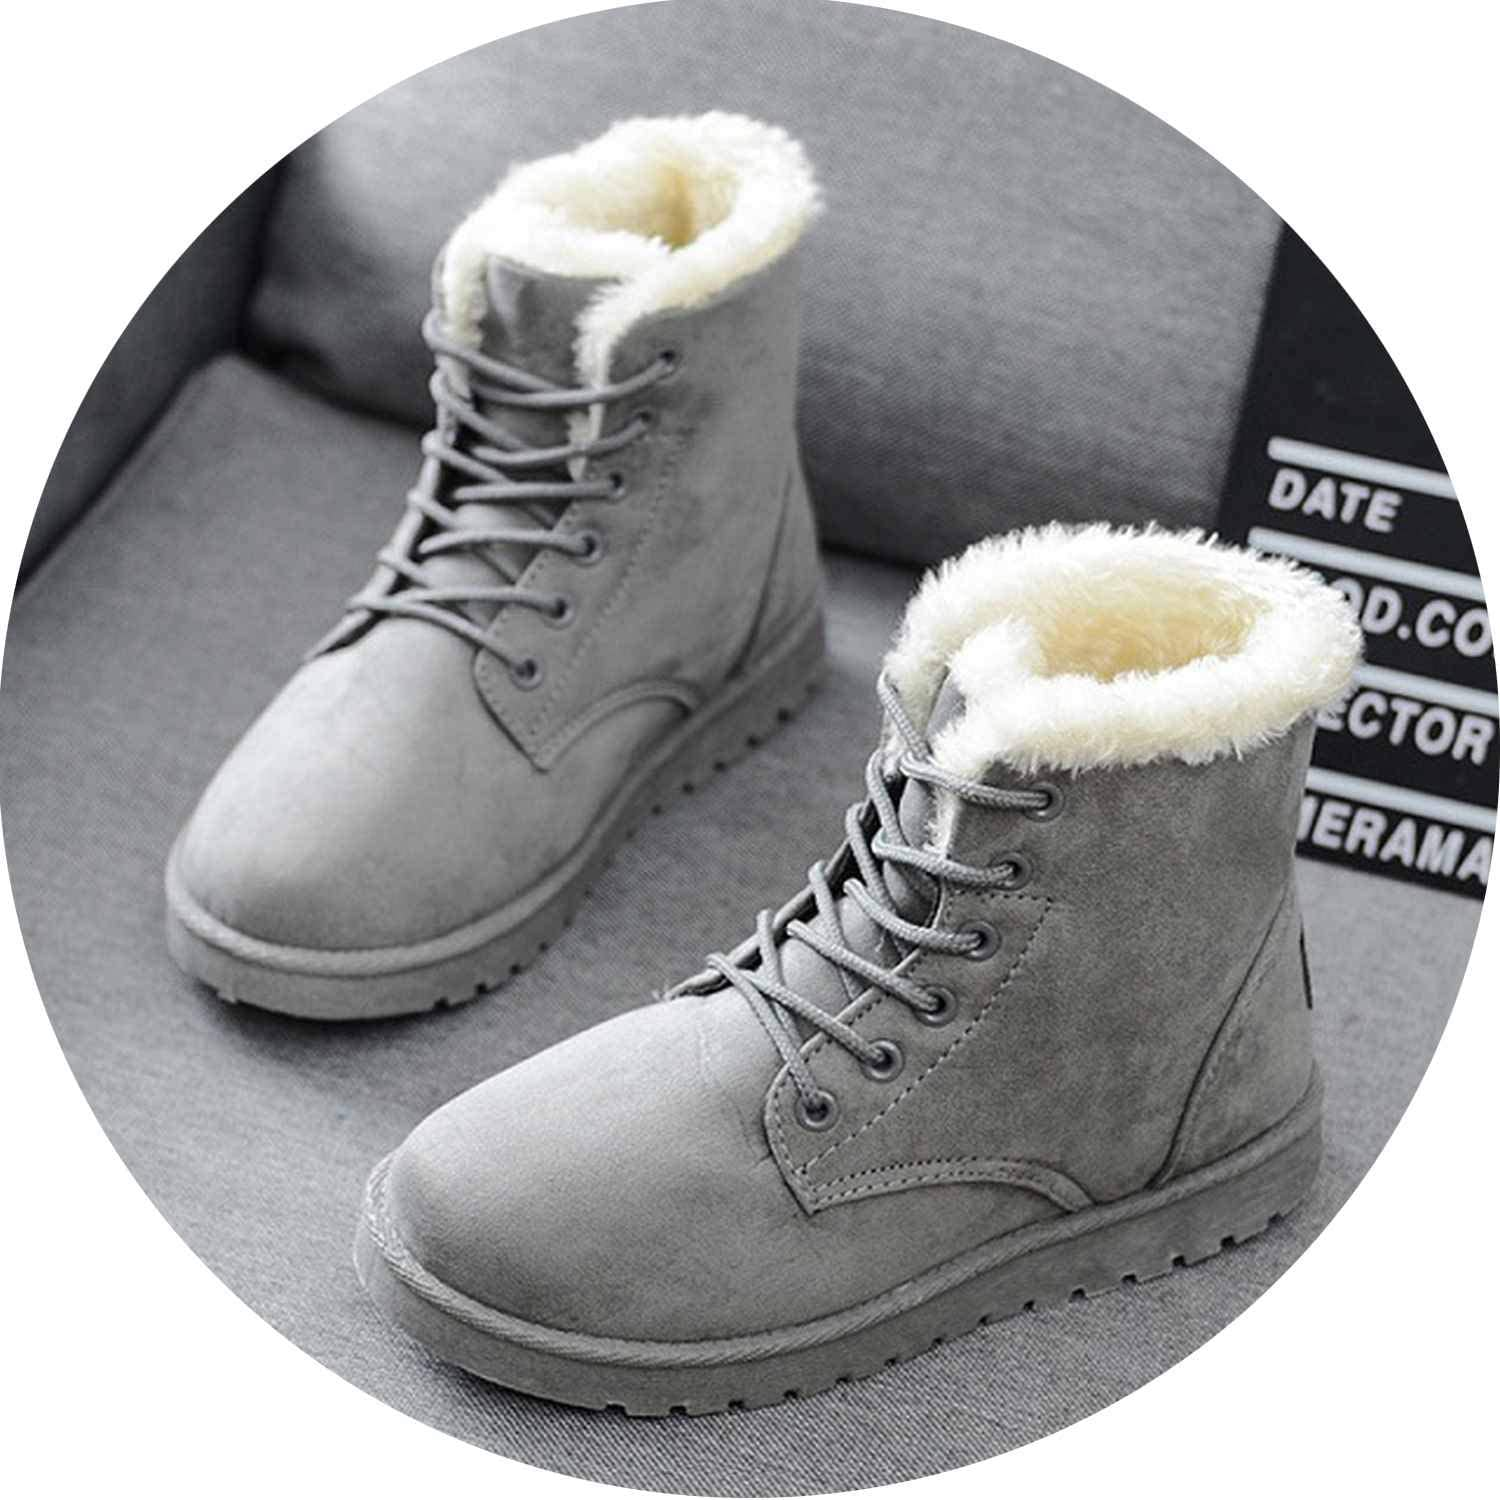 Women Boots Warm Winter Boots Female Fashion Women shoes Faux Suede Ankle Boots for Women